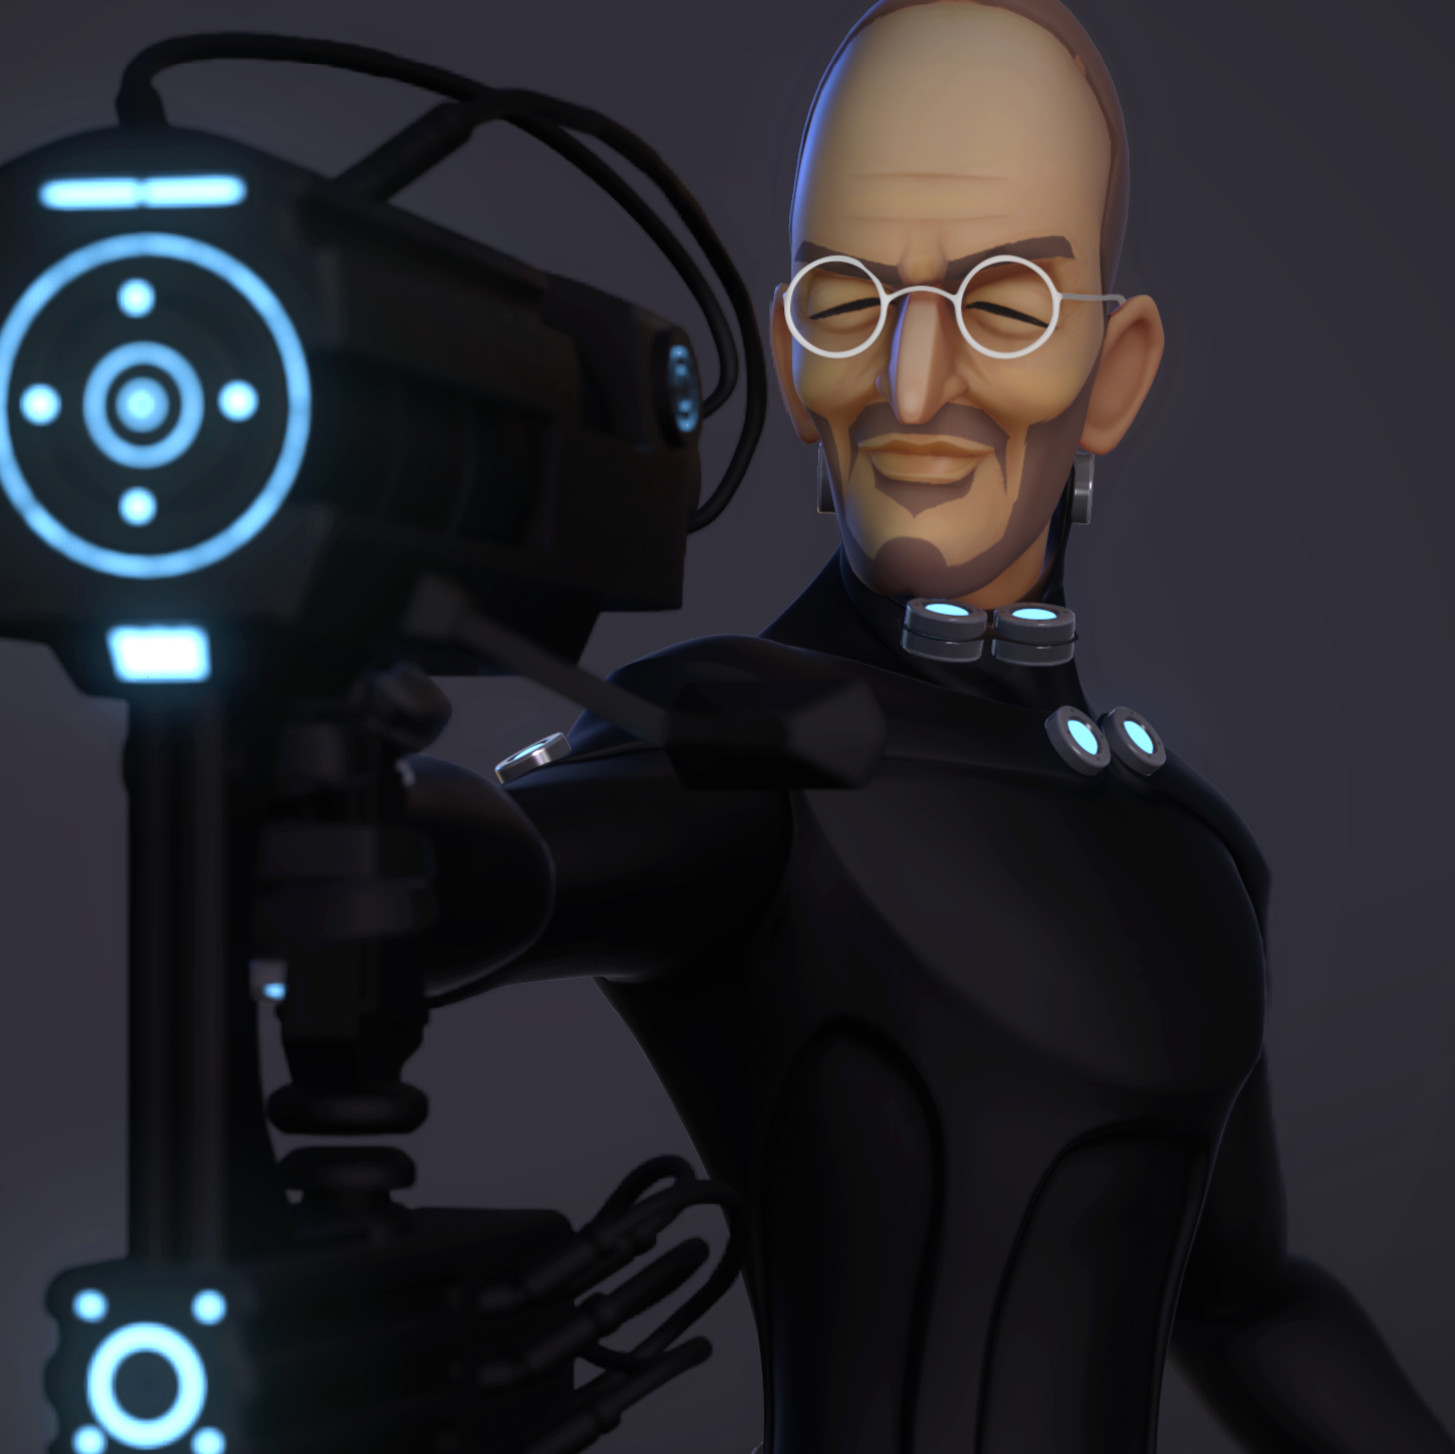 GANTZ crossover fan art 3d rig